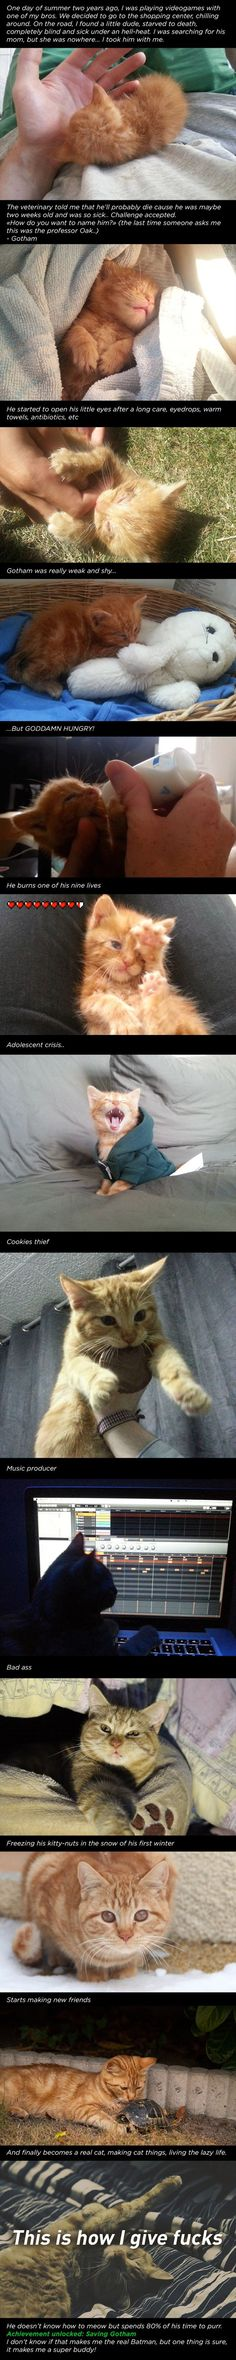 Story of a Cat named Gotham - I love people that are able to do this sort of thing!